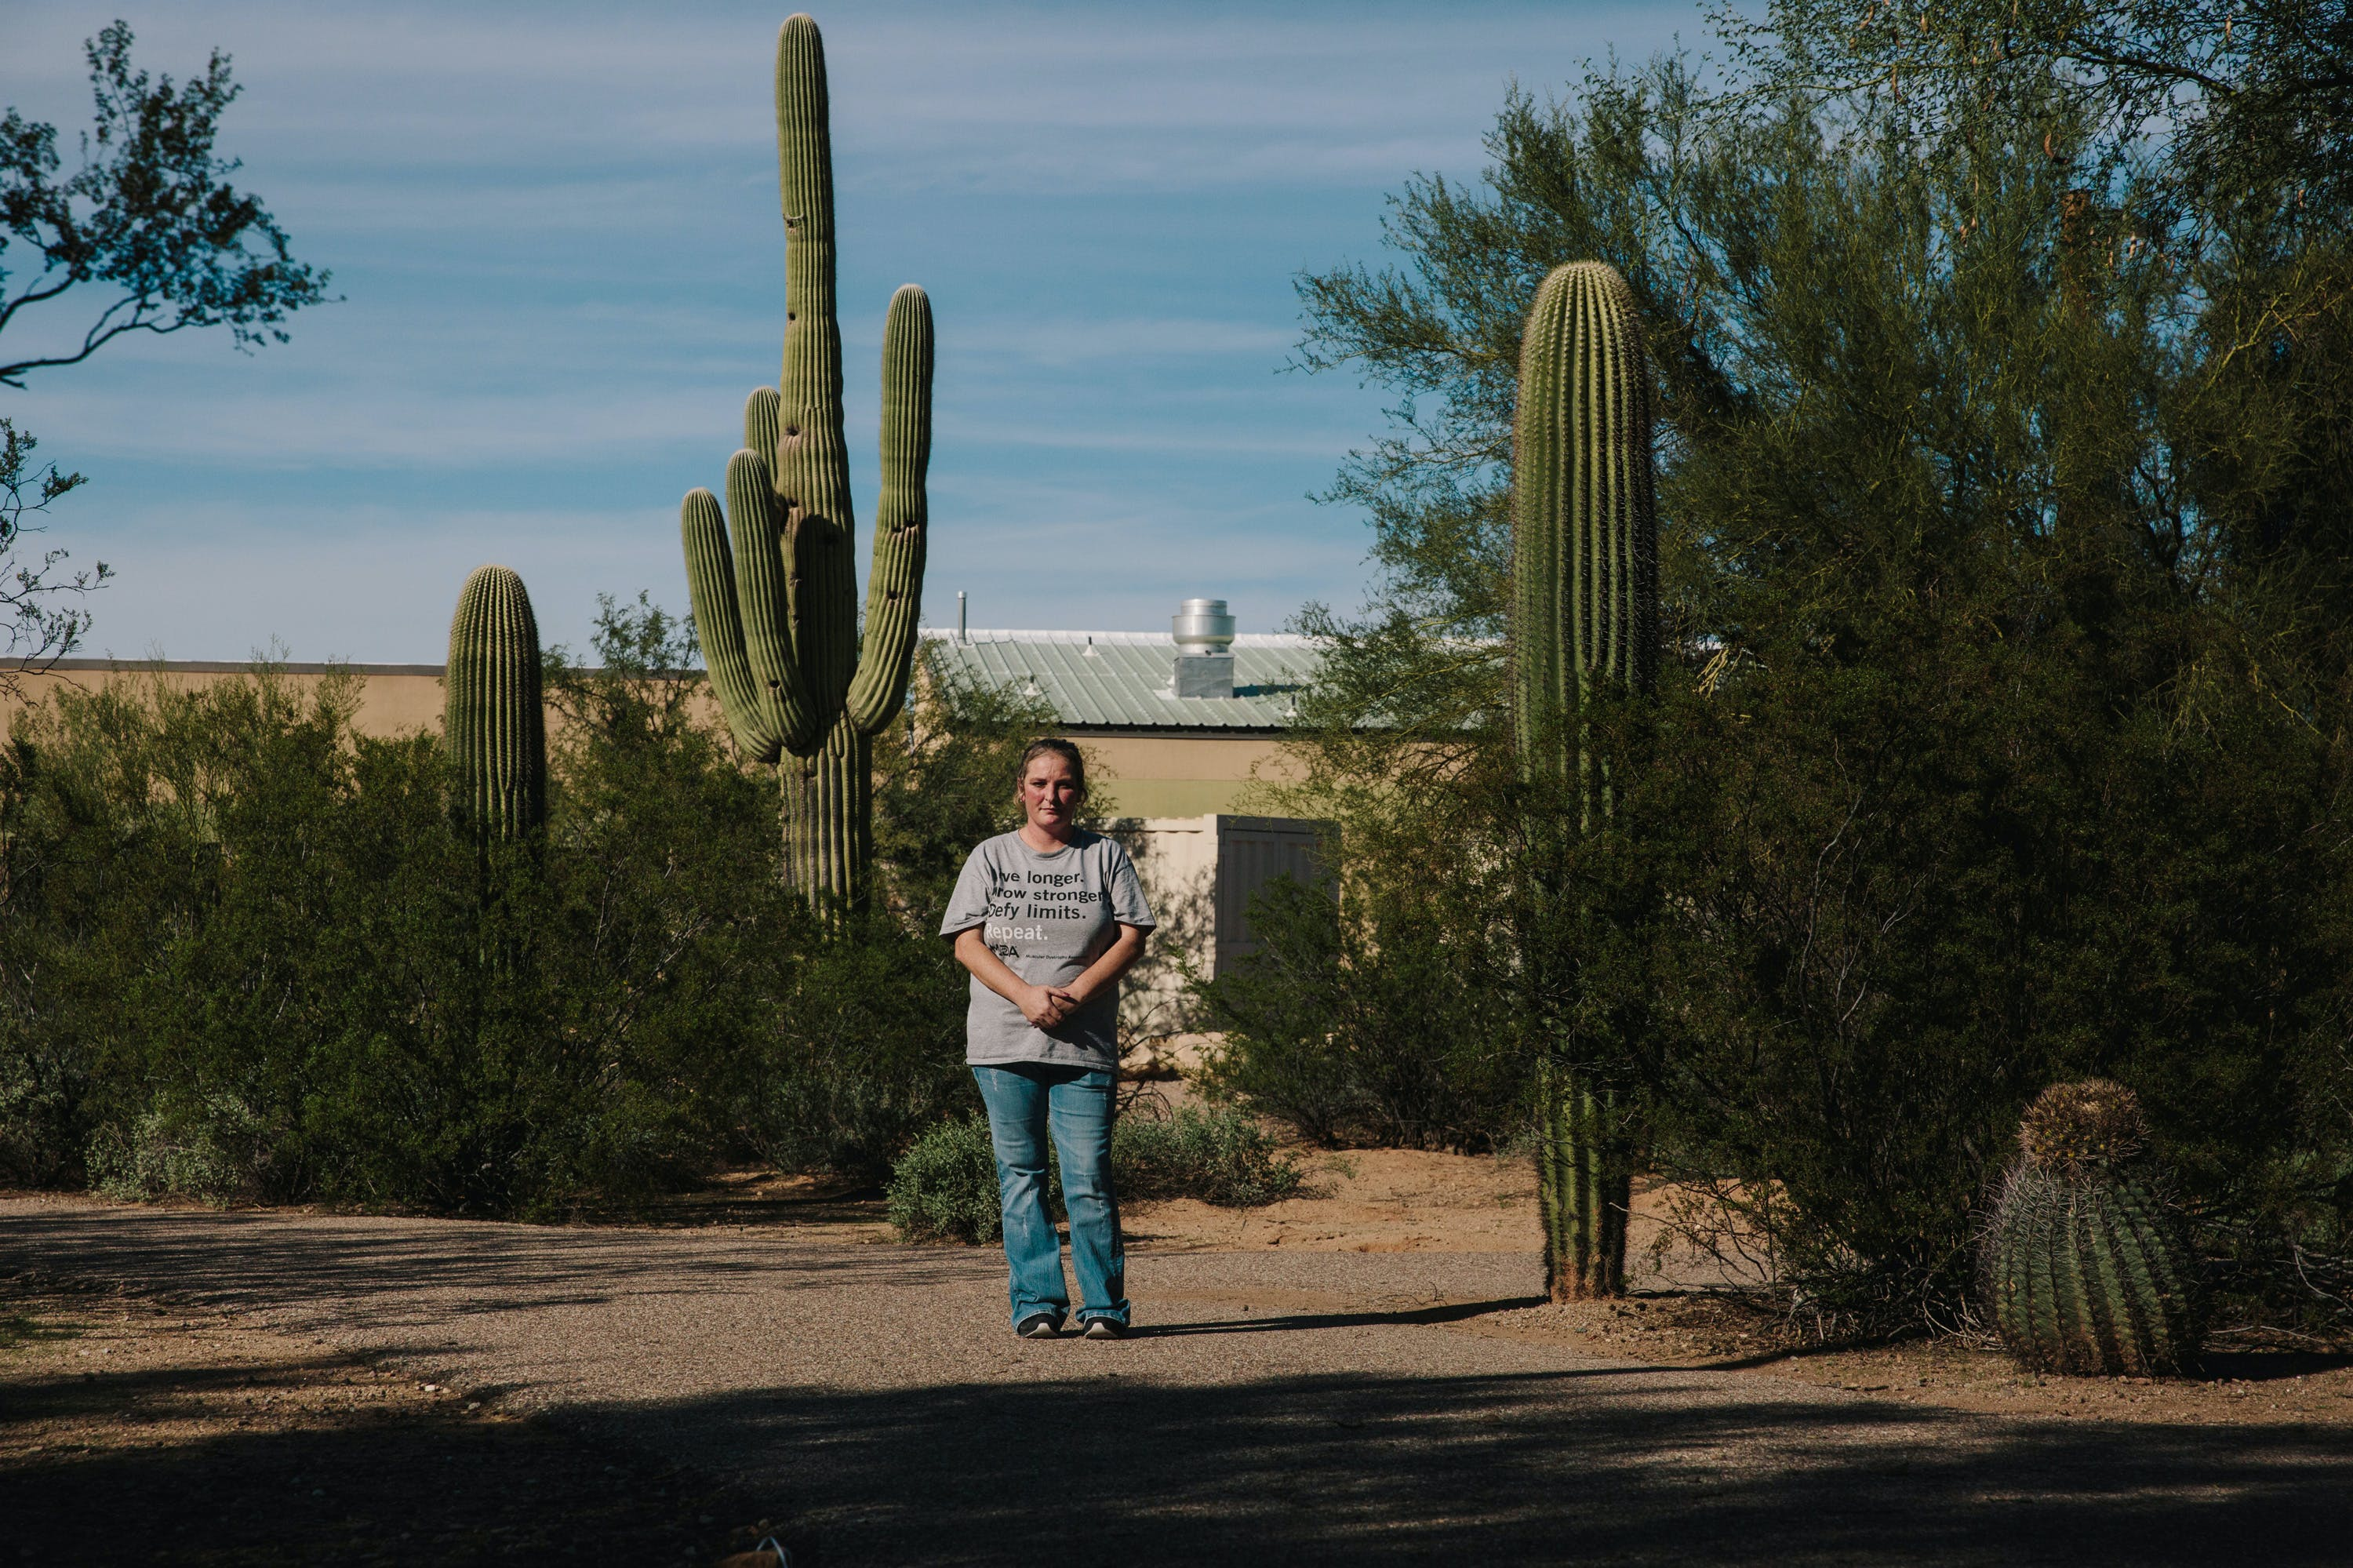 Elishia Sloan at Picture Rock Park on Oct. 28 in Tucson, Ariz. (Caitlin O'Hara for The Intercept)